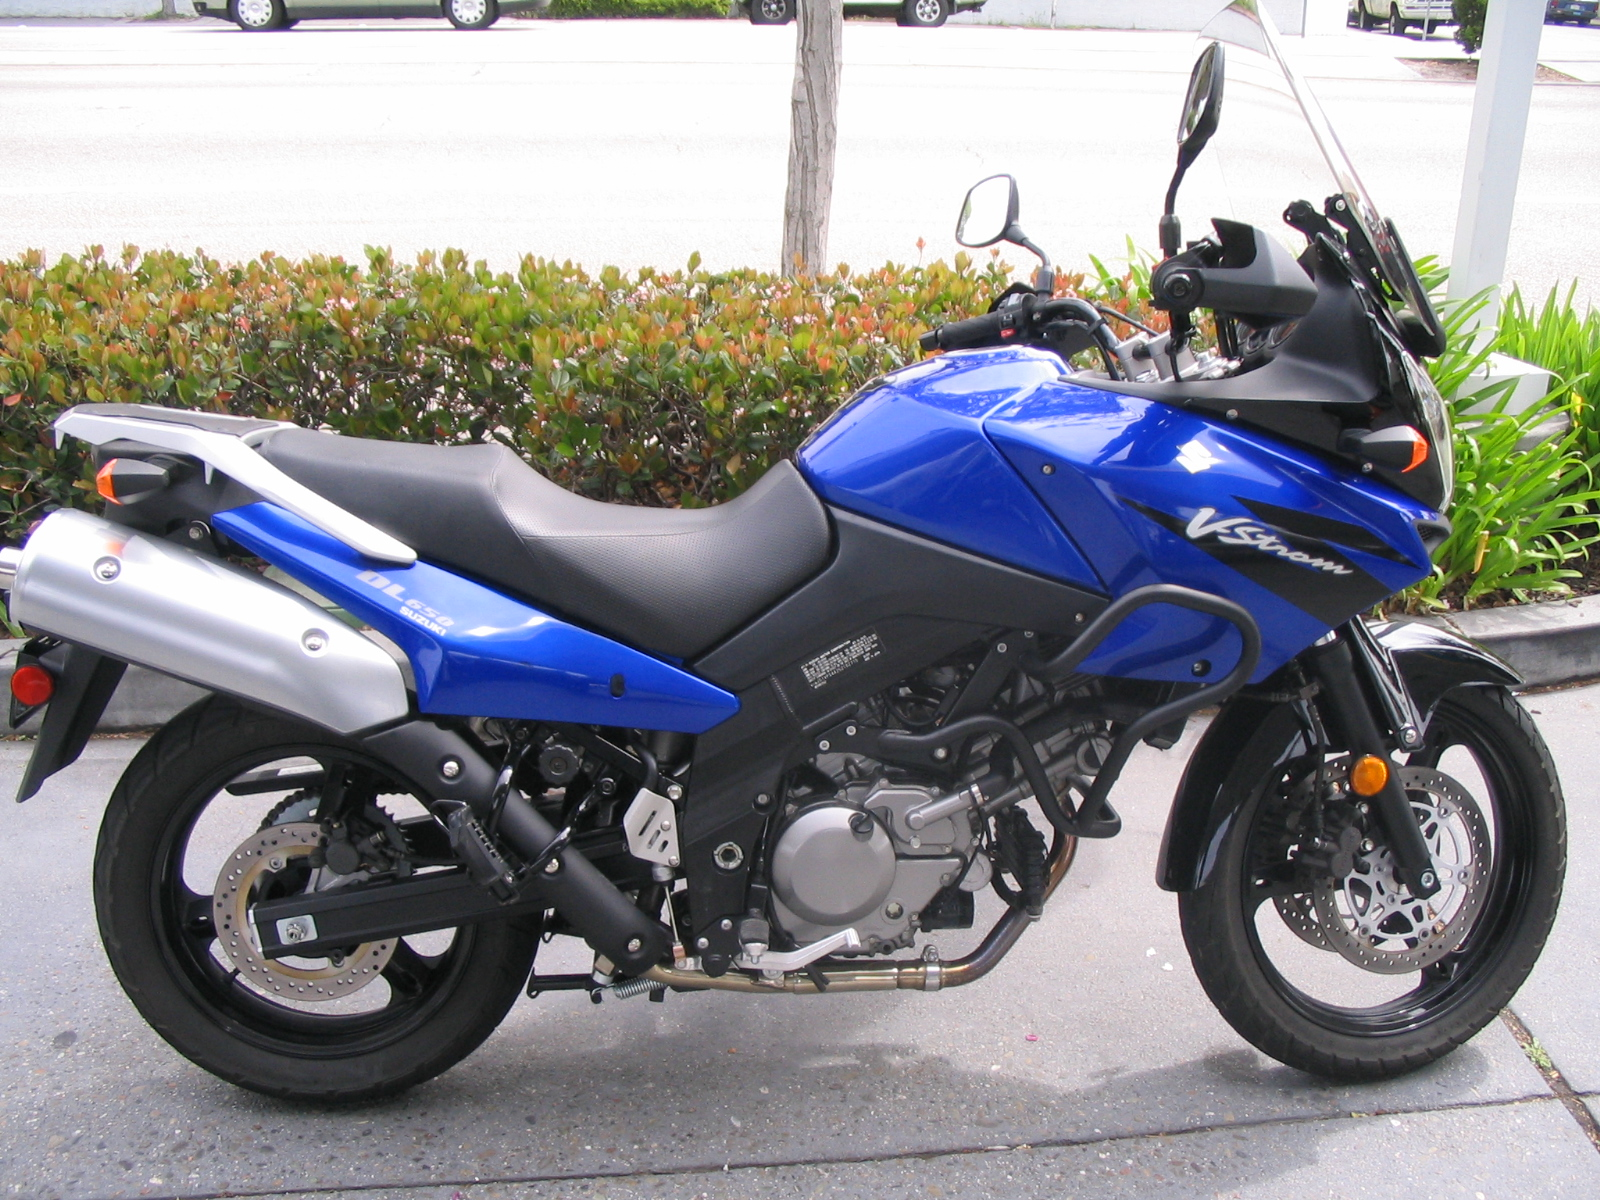 Description suzuki vstrom dl650 motorcycle